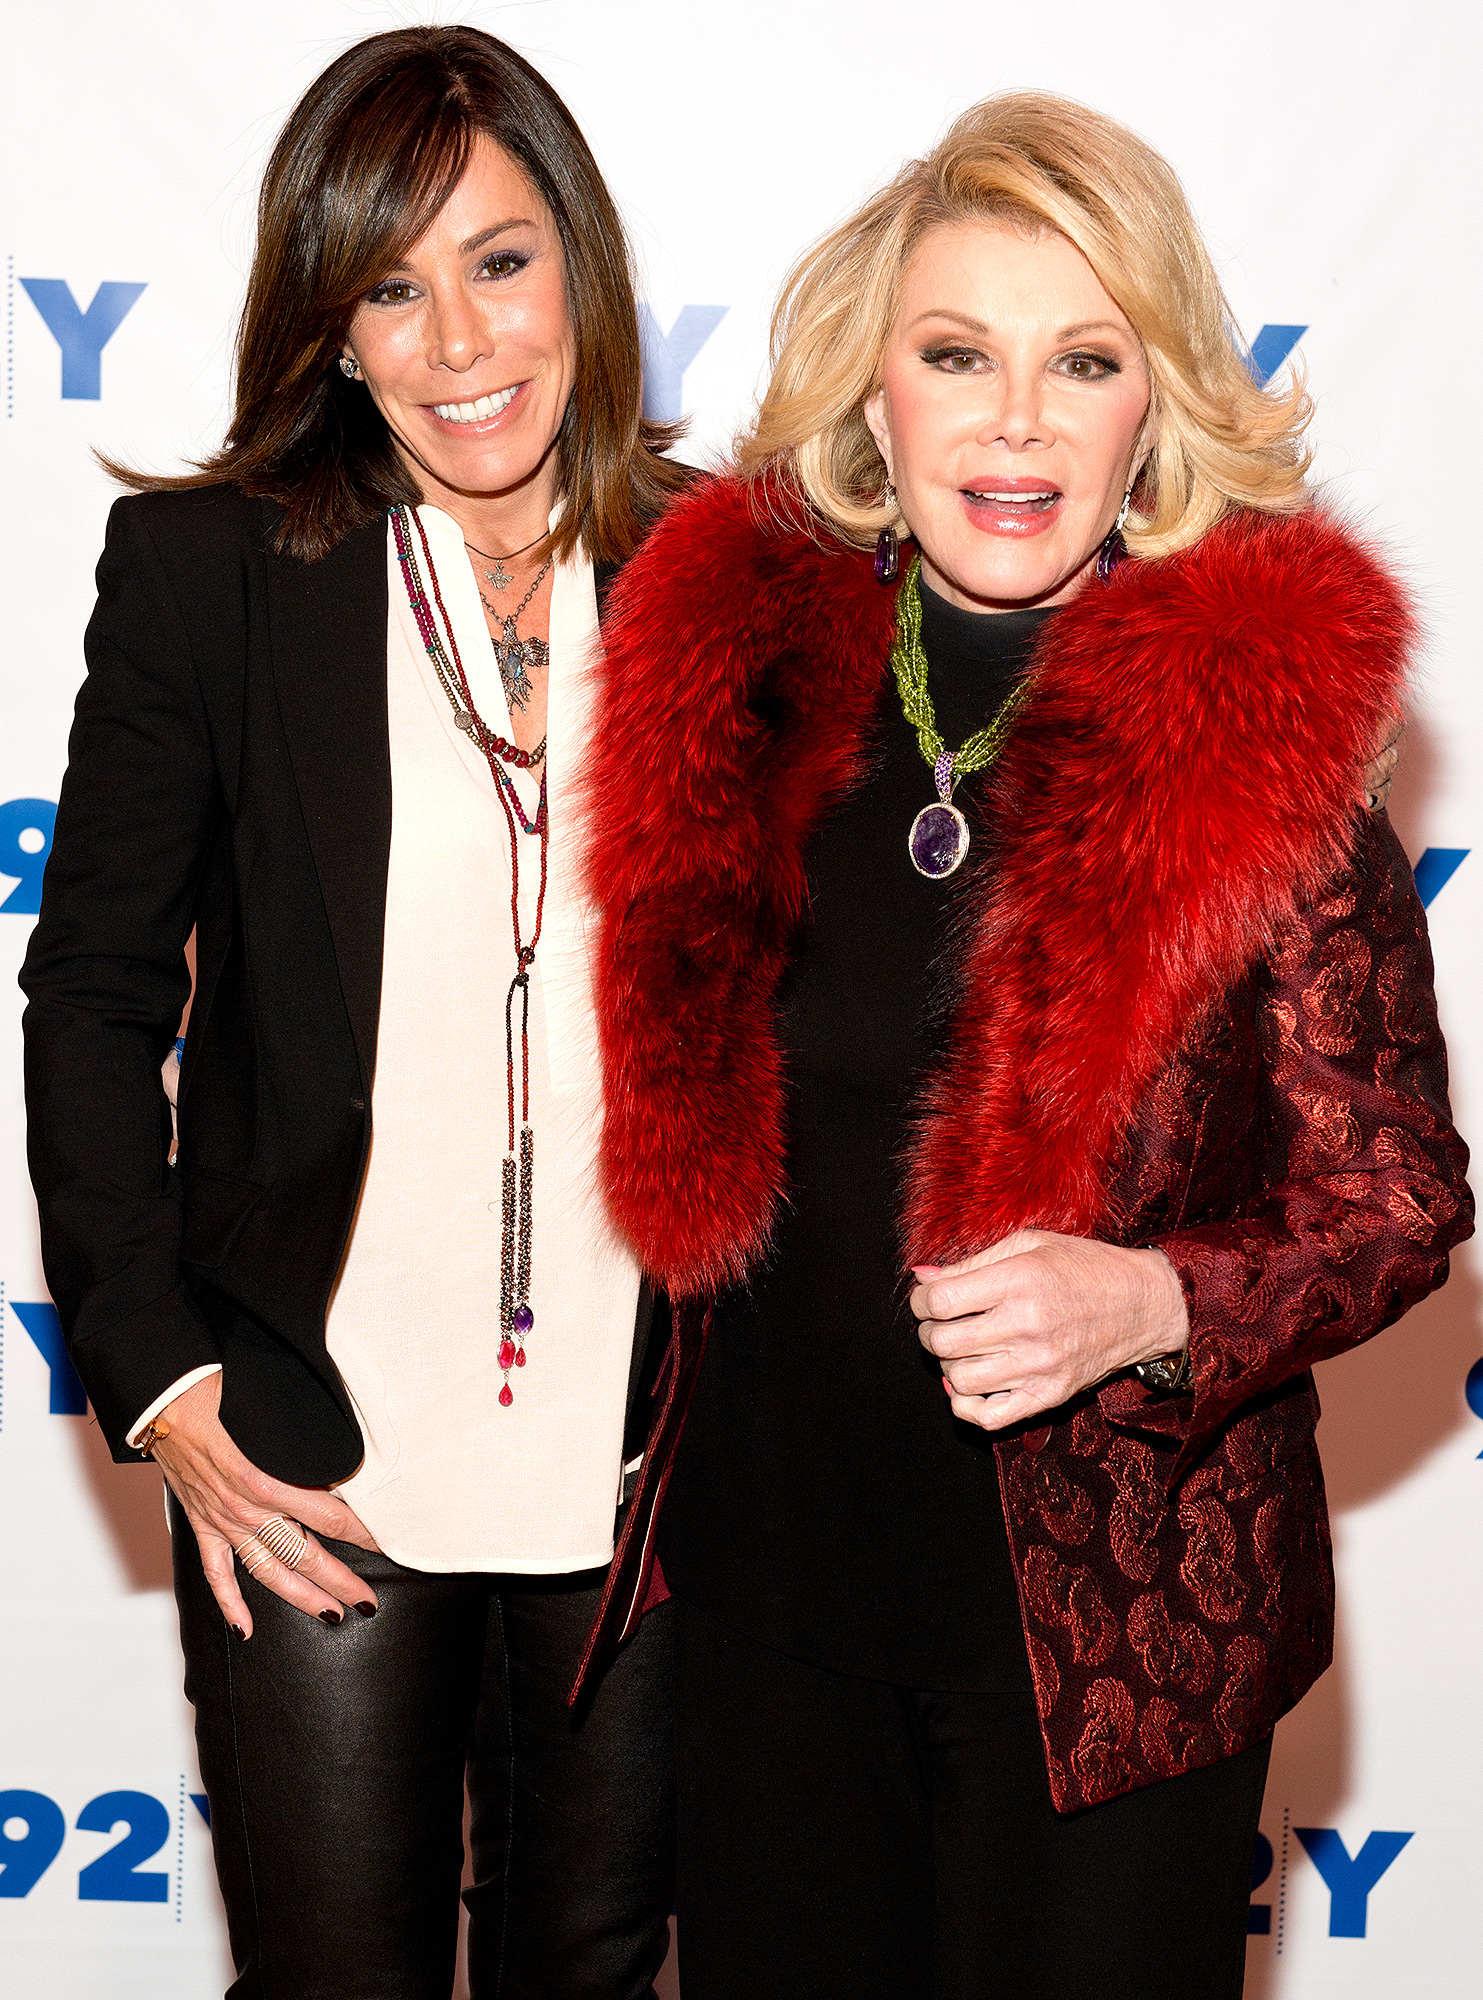 92nd Street Y Presents: An Evening With Joan And Melissa Rivers